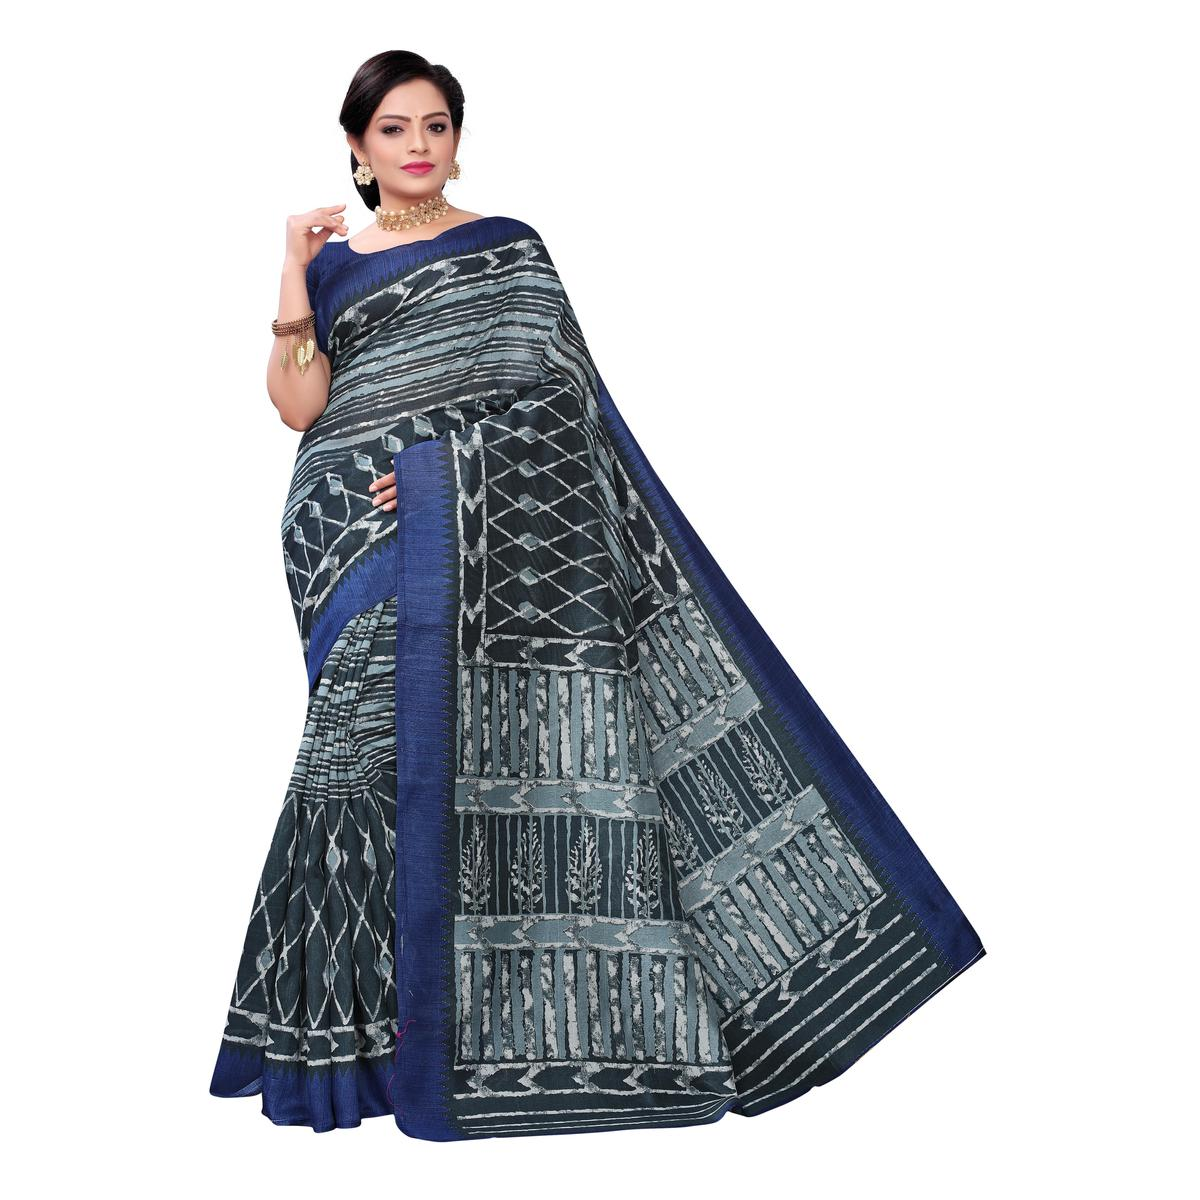 Engrossing Blue Colored Casual Wear Printed Joya Silk Saree